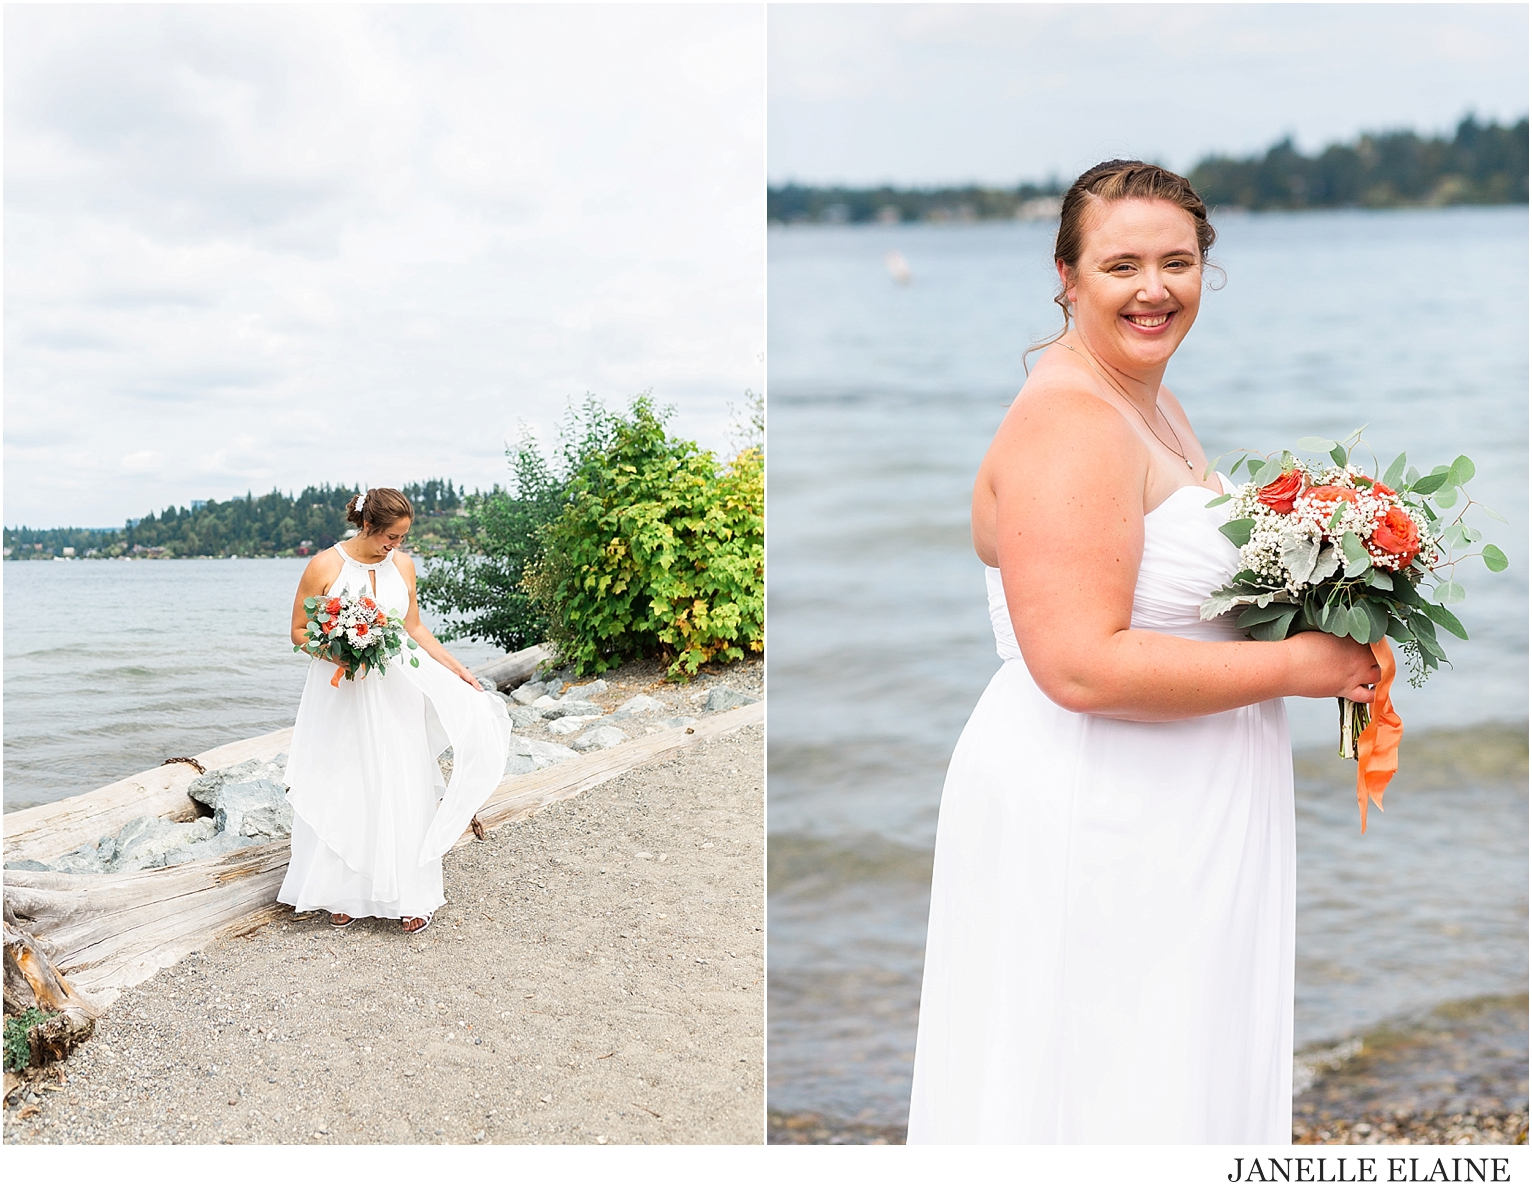 liz and christina lanning-first look and portraits-luther burbank park-janelle elaine photography-100.jpg